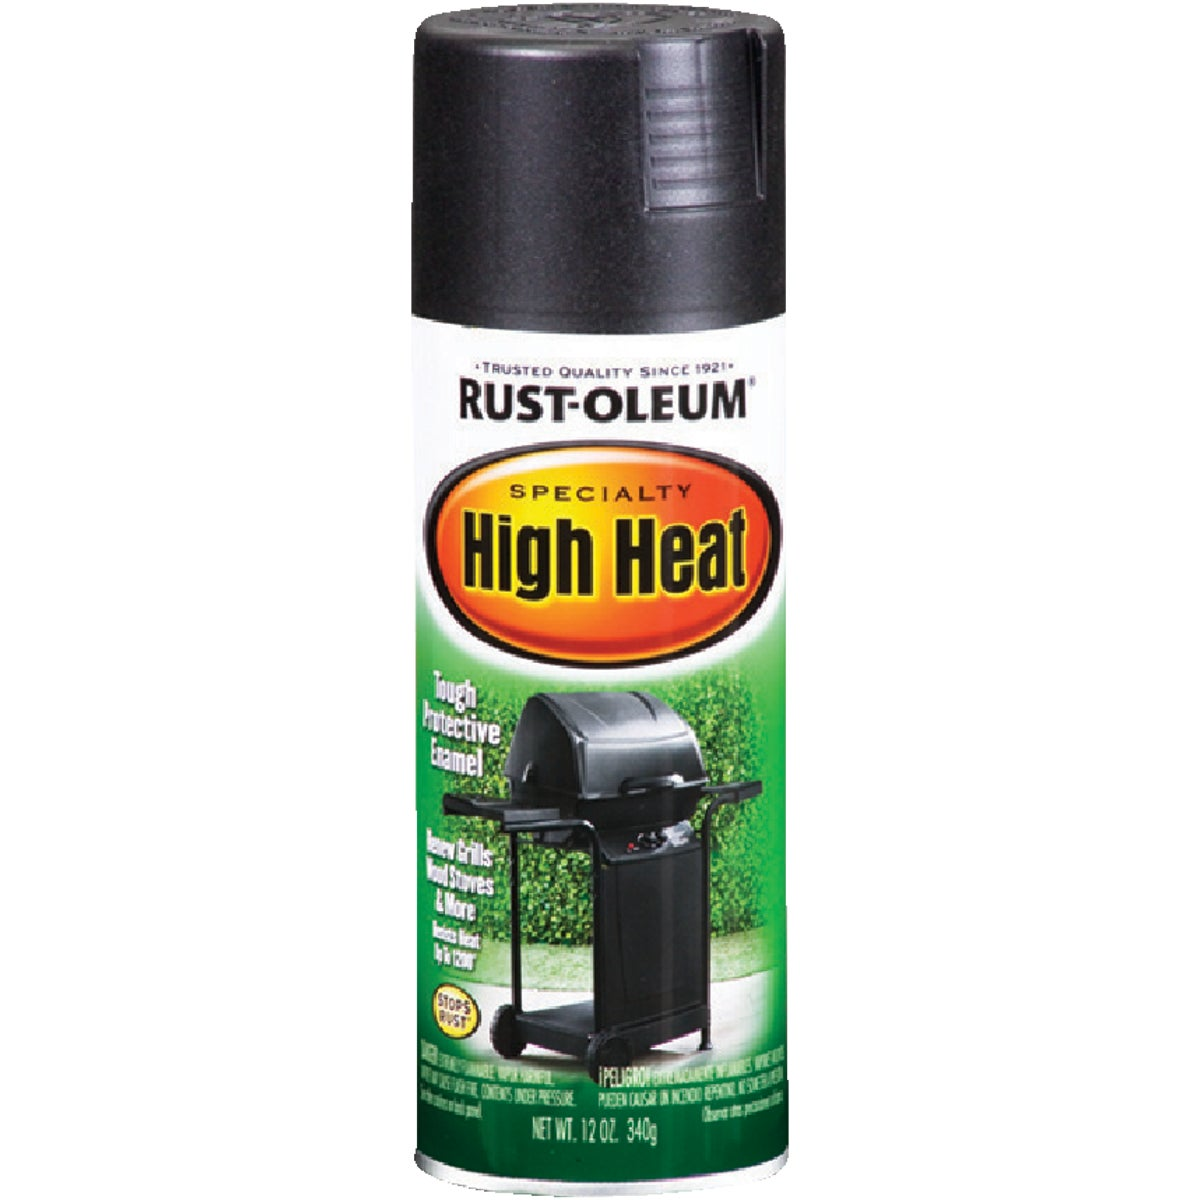 BLK HI-HEAT SPRAY PAINT - 7778-830 by Rustoleum